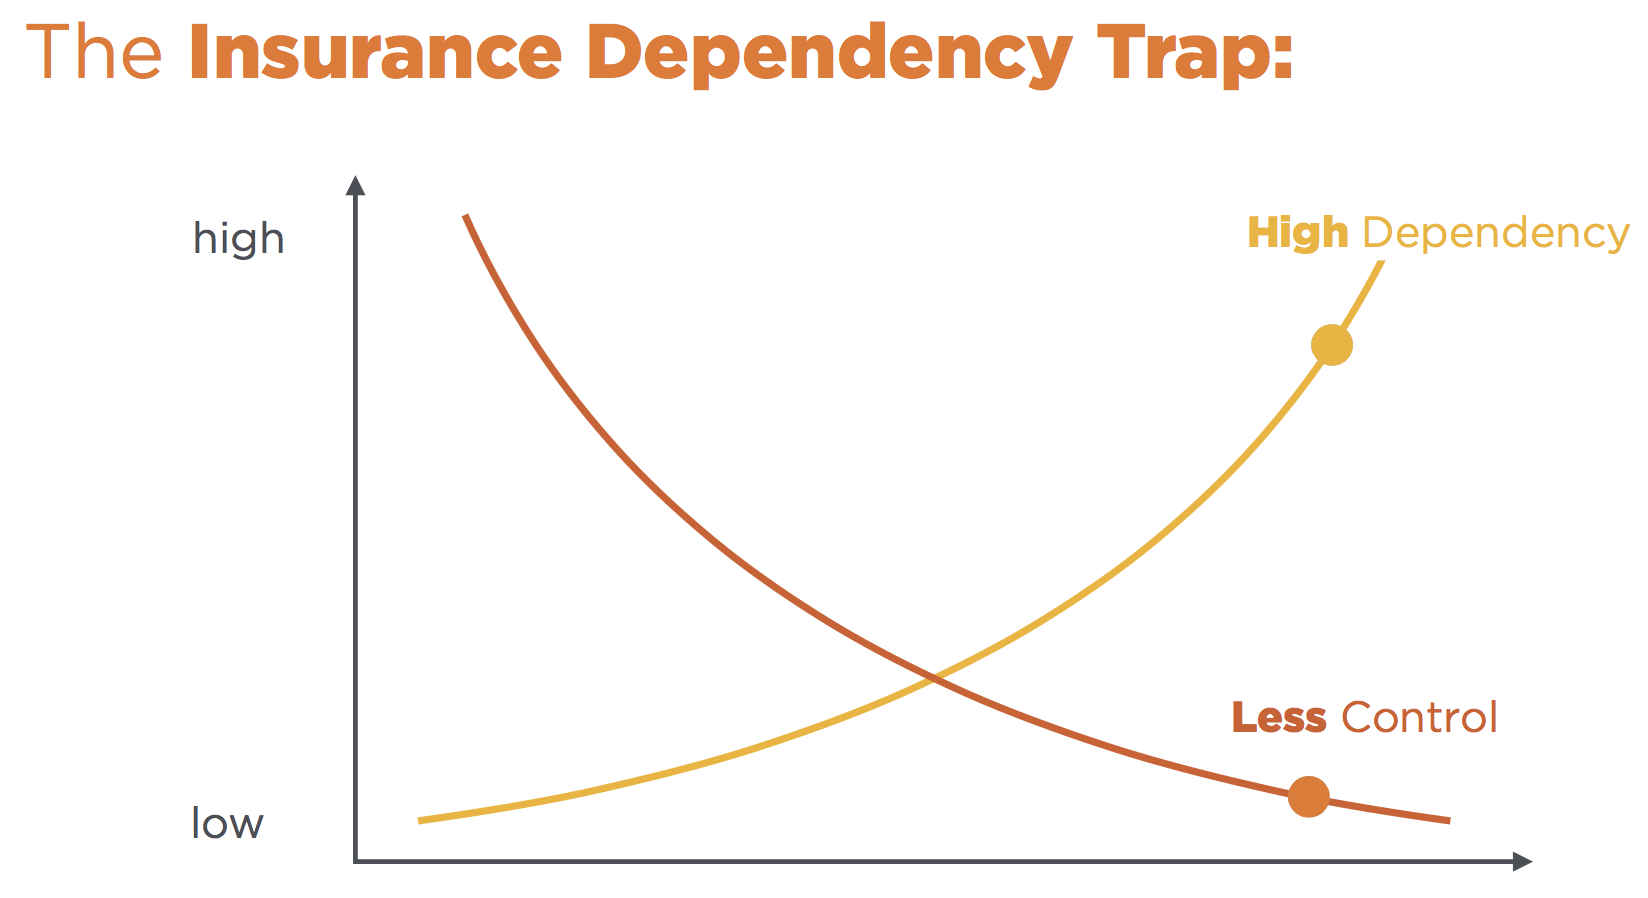 Insurance Dependency Trap